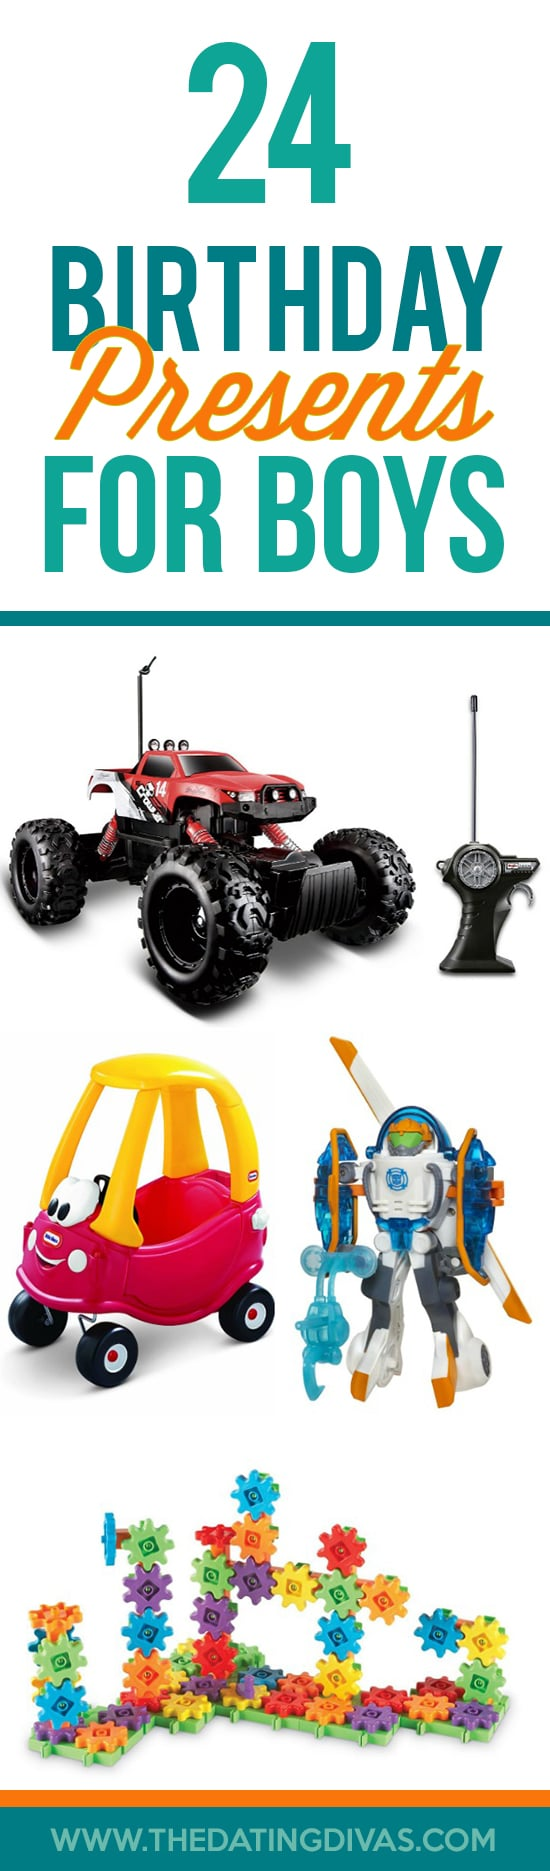 Birthday Presents Ideas for Boys